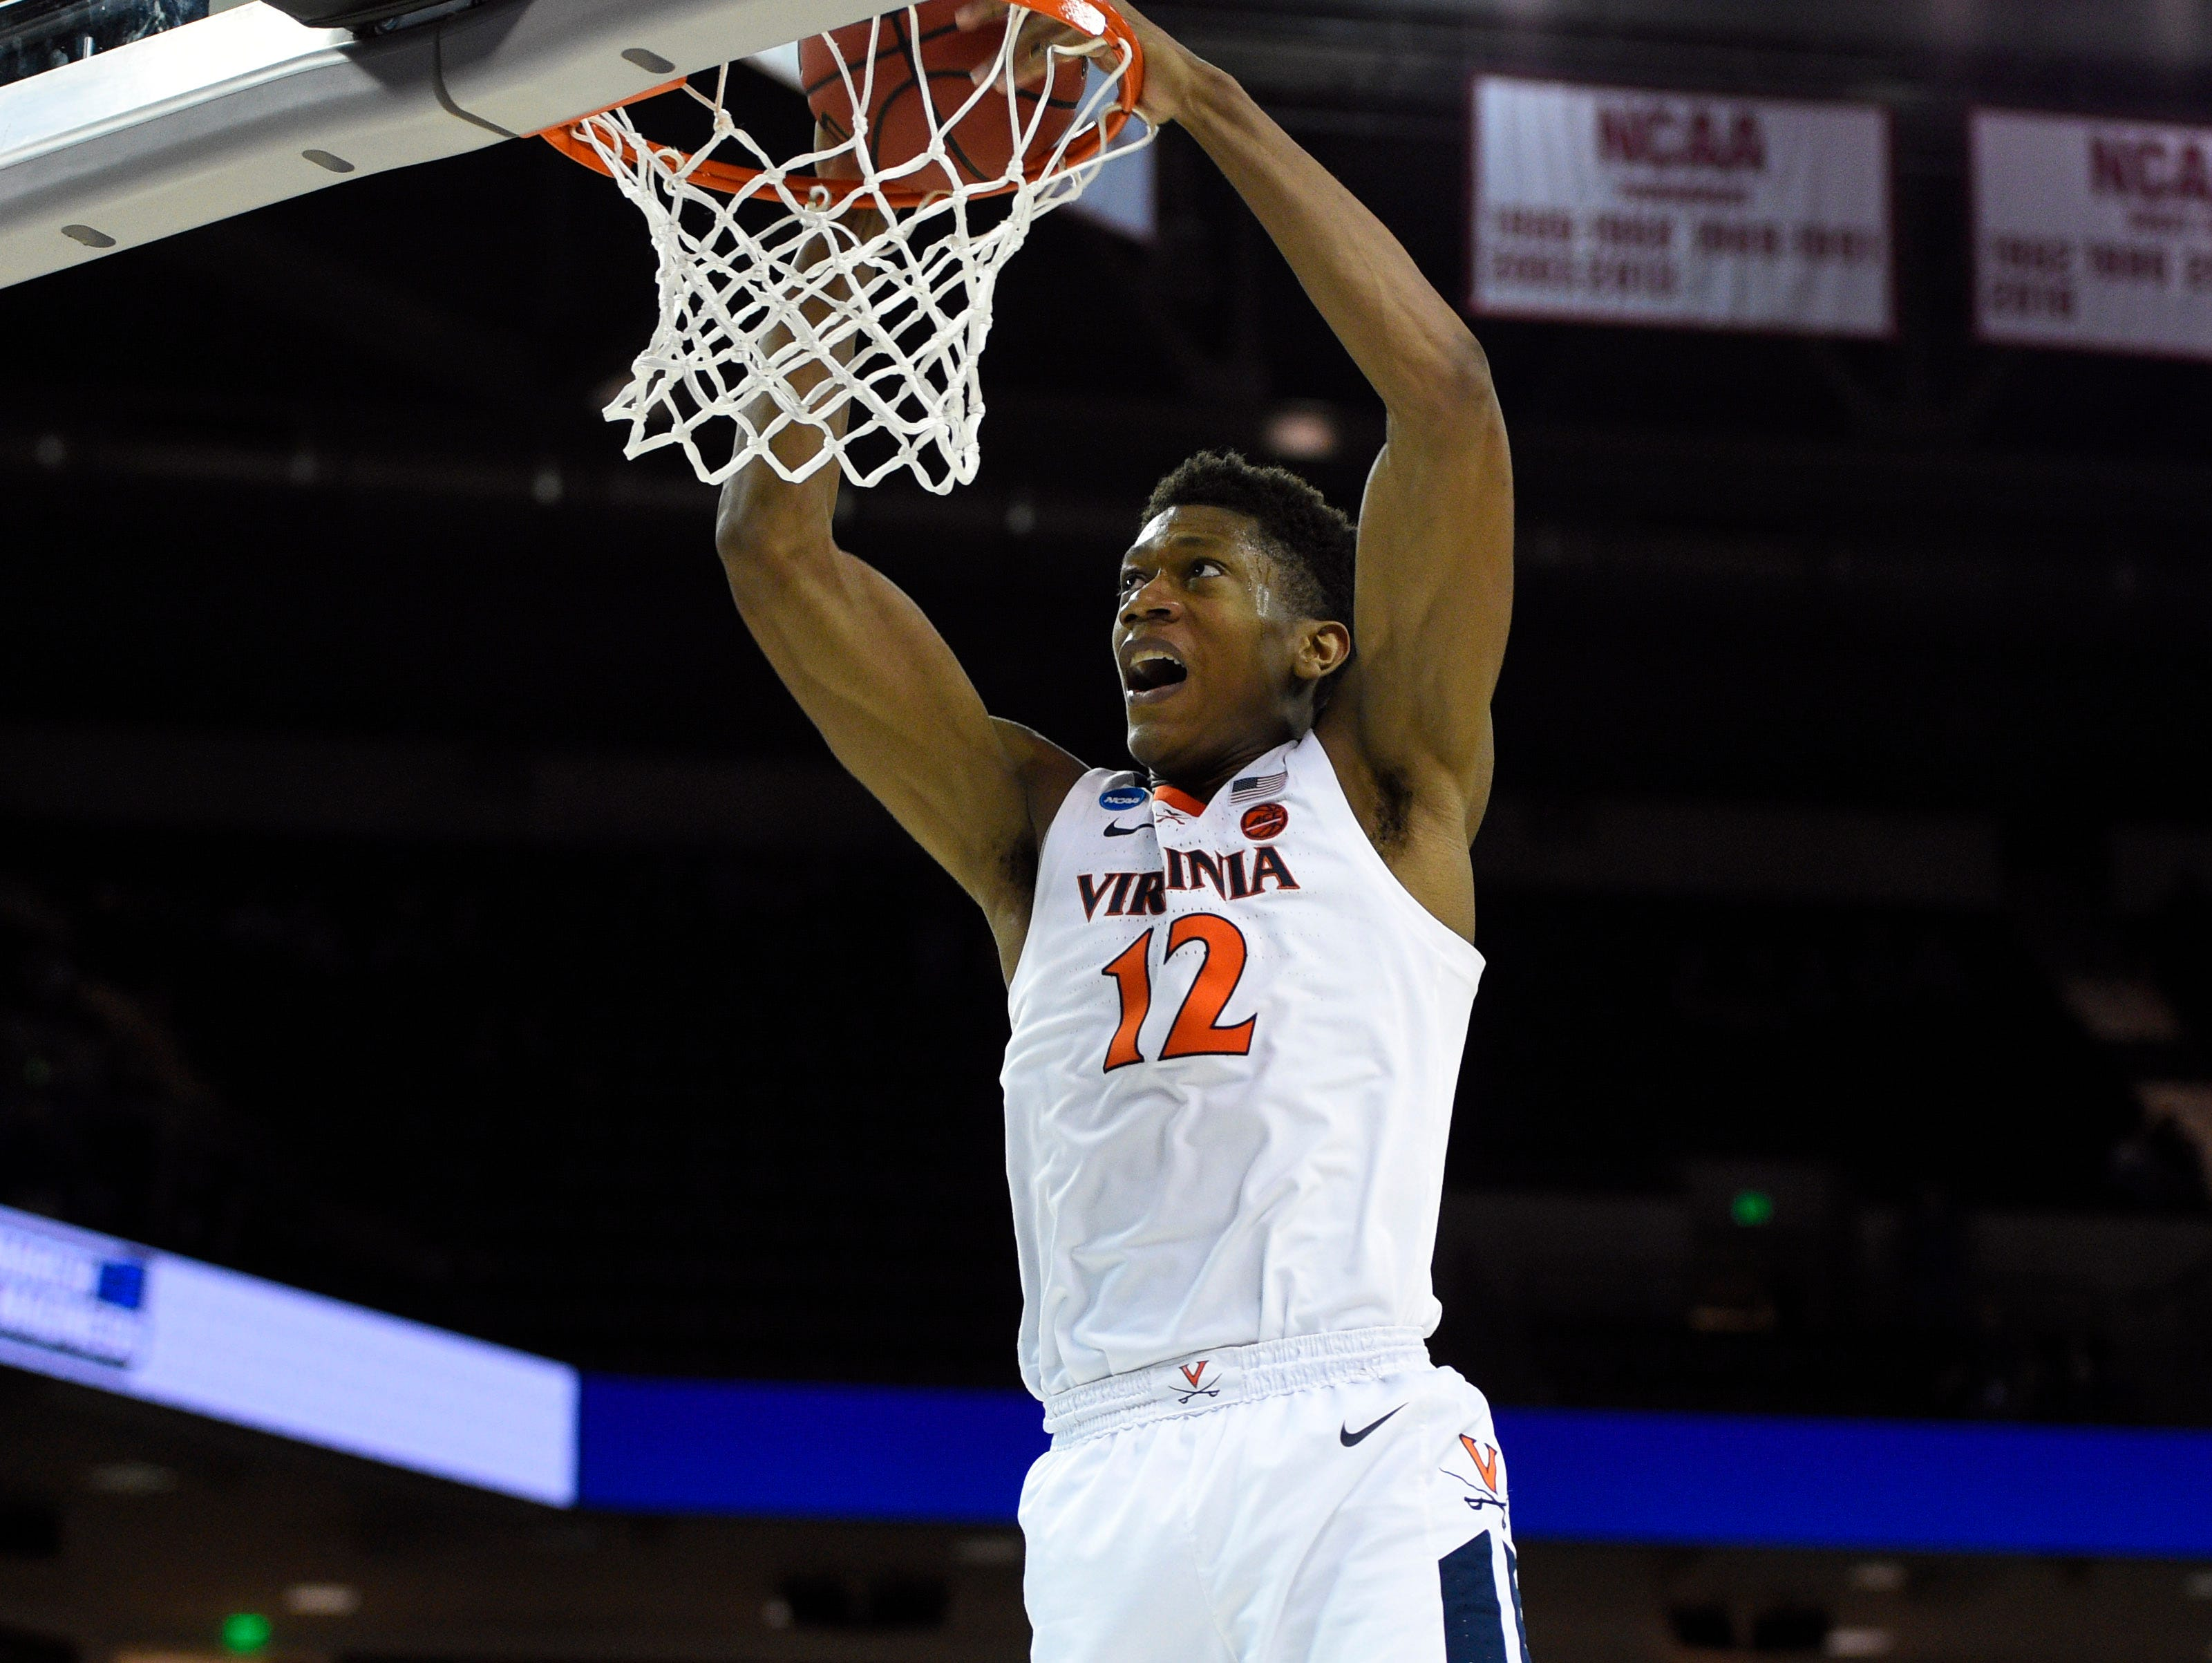 Round of 32: Virginia's De'Andre Hunter dunks during the second half against Oklahoma.